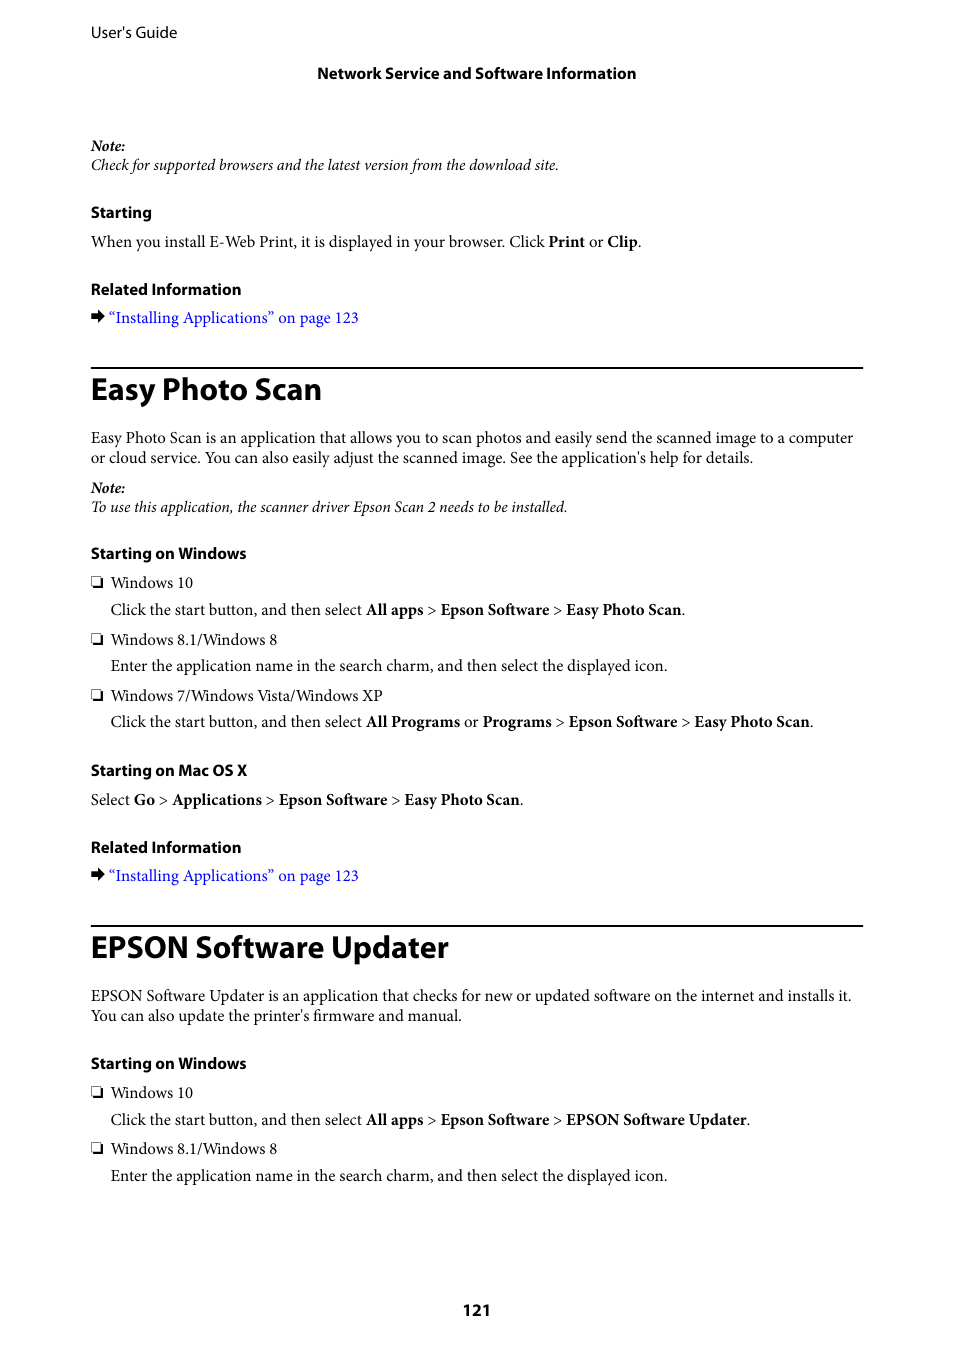 Easy photo scan, Epson software updater | Epson Expression